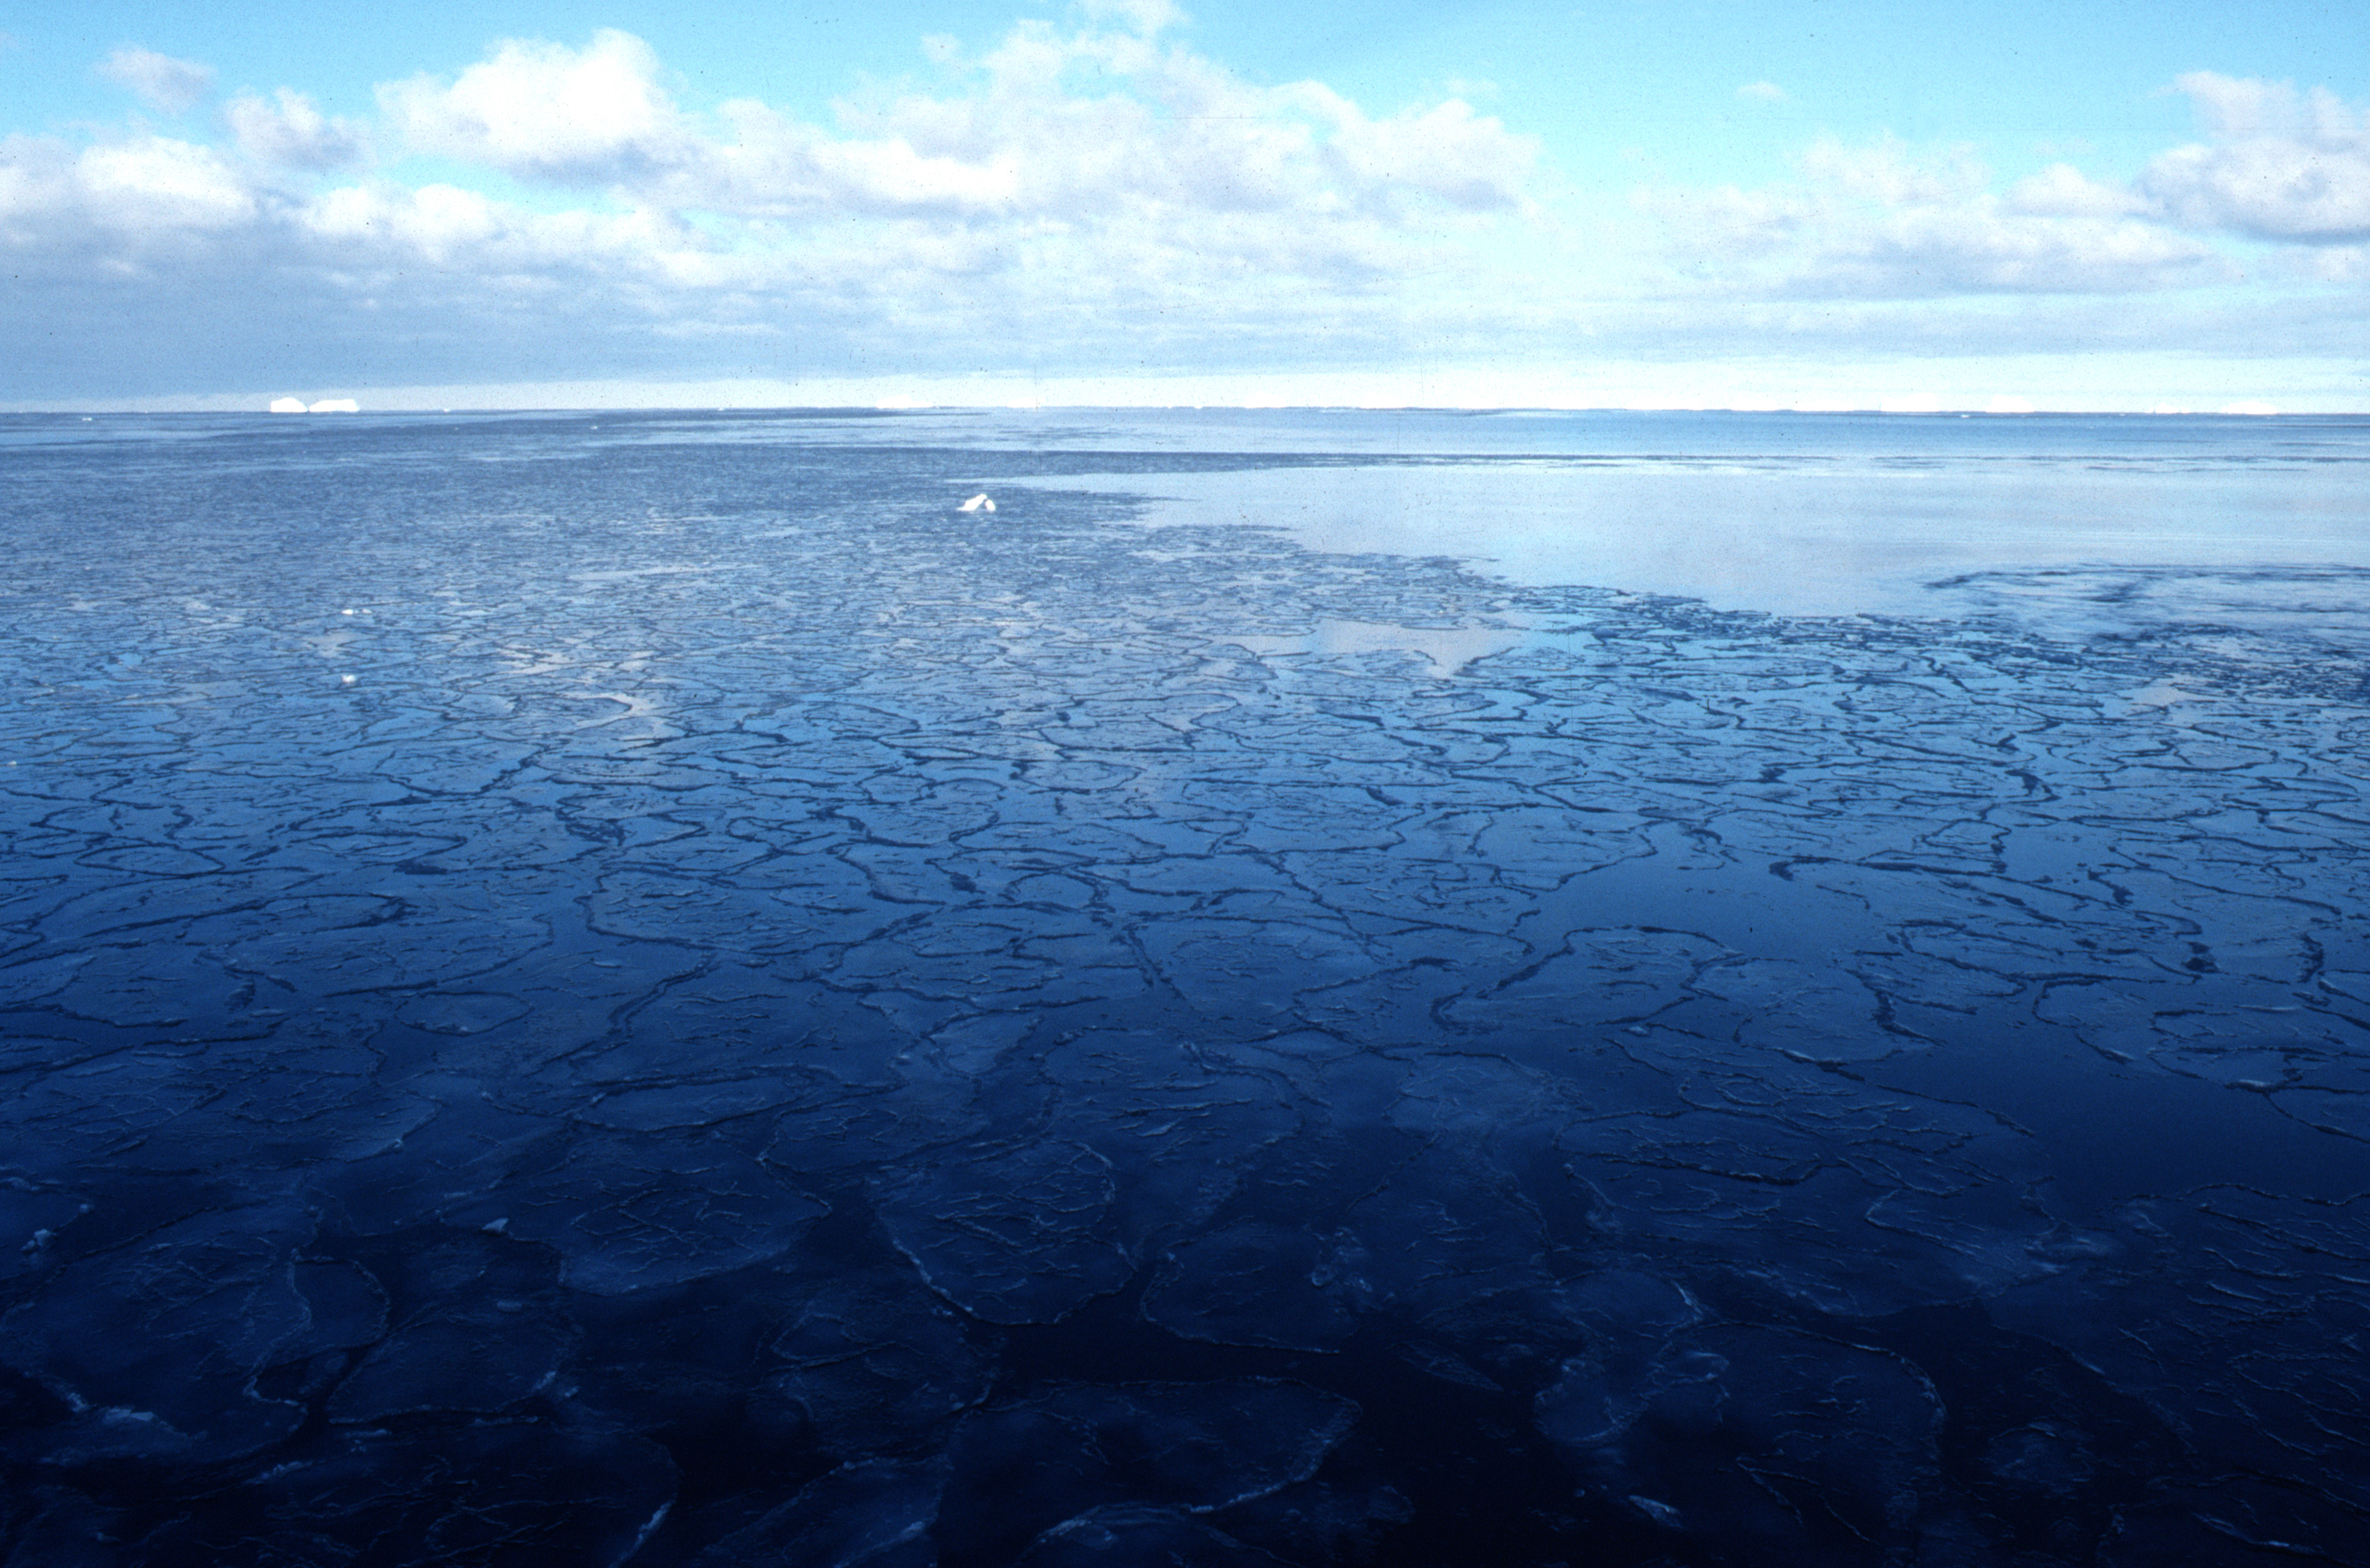 Sea with pancake ice